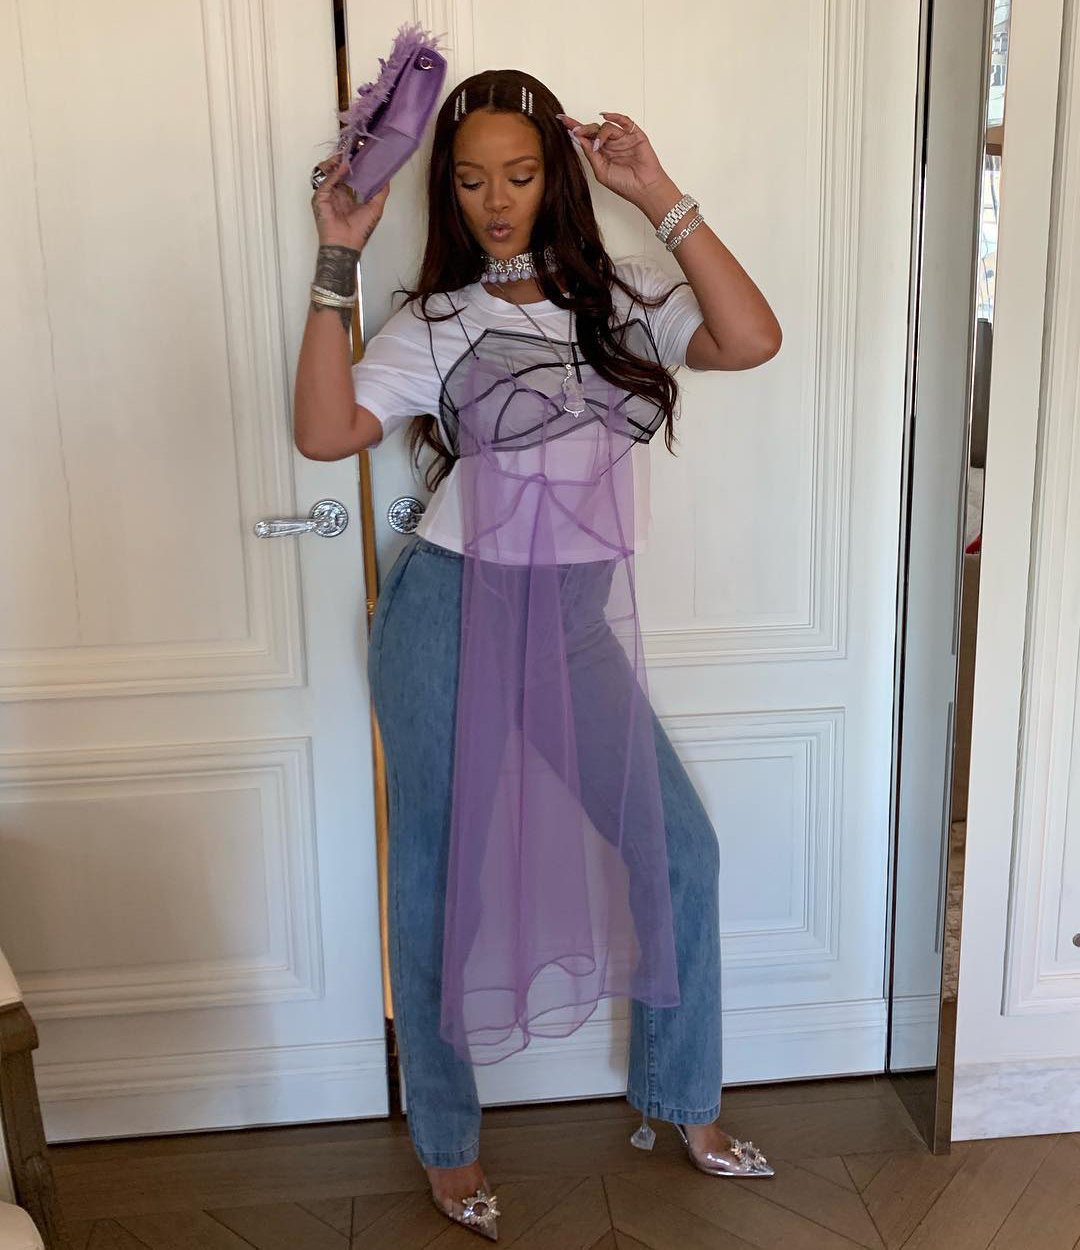 Rihanna Quetsche tulle cotton tee, Andy Wolf x KM20 Olga white crystal sunglasses, Matthew Adams Dolan high-waist jeans, Amina Muaddi Begum PVC pumps, Sue Gragg purple jade necklaces and rings